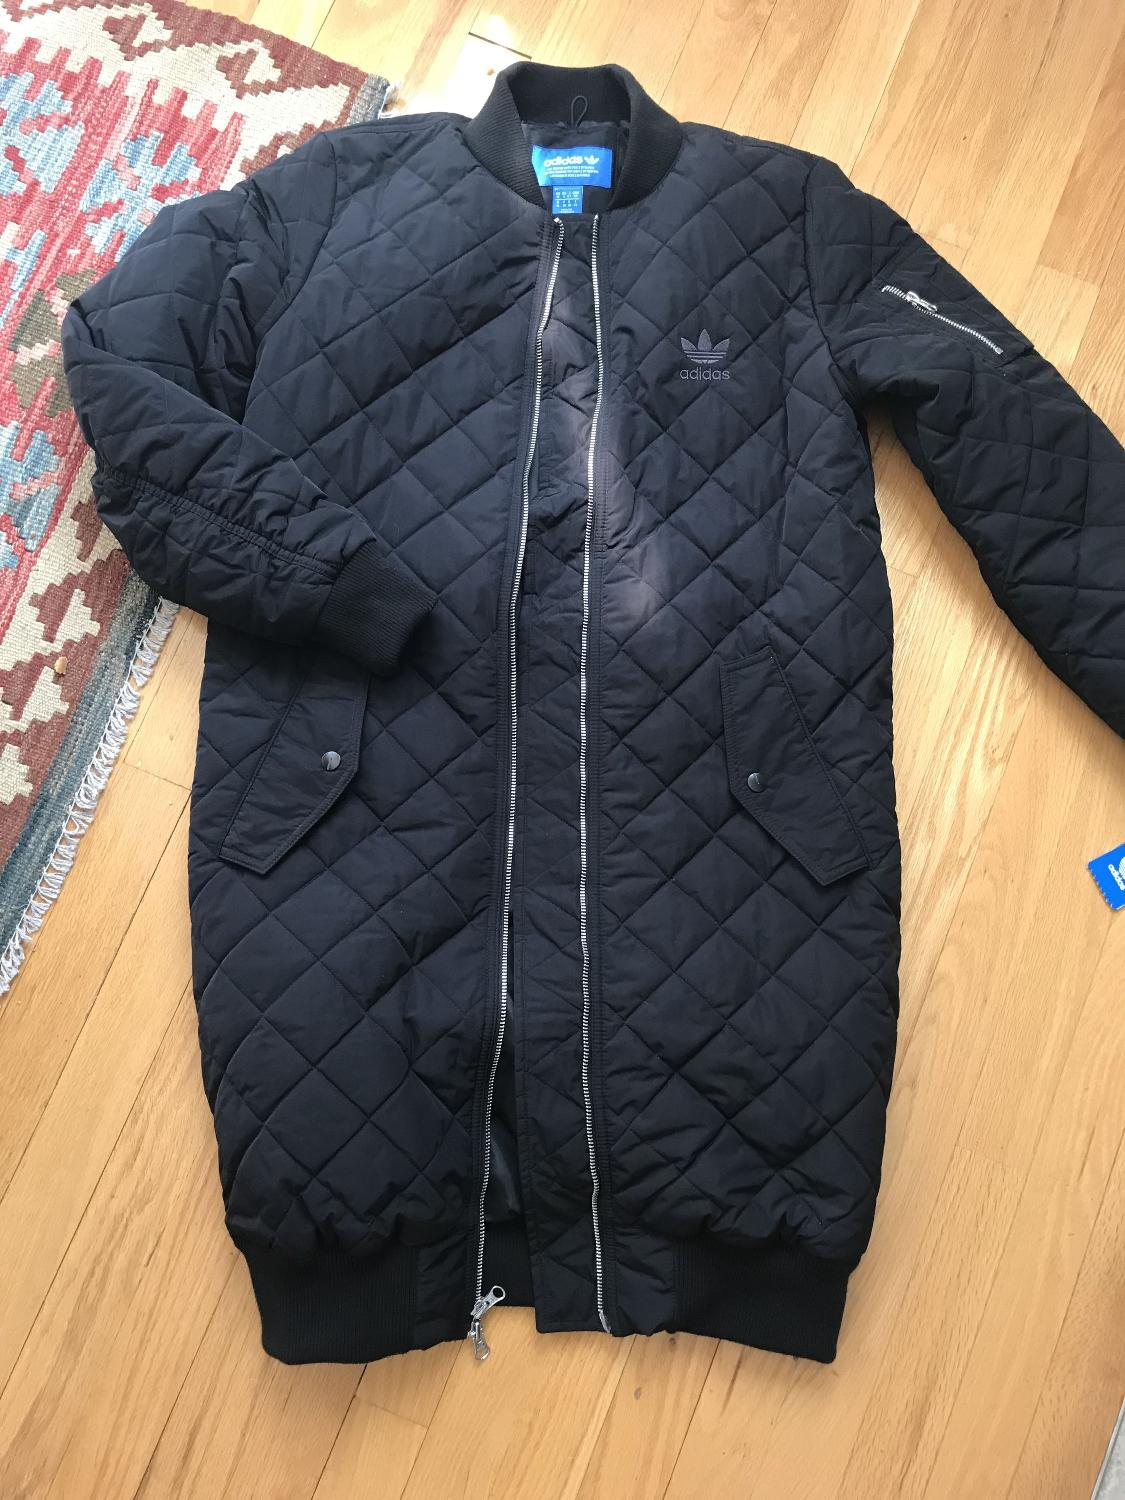 3612c00b1 ADIDAS Originals Long Quilted Bomber Jacket - new w tags